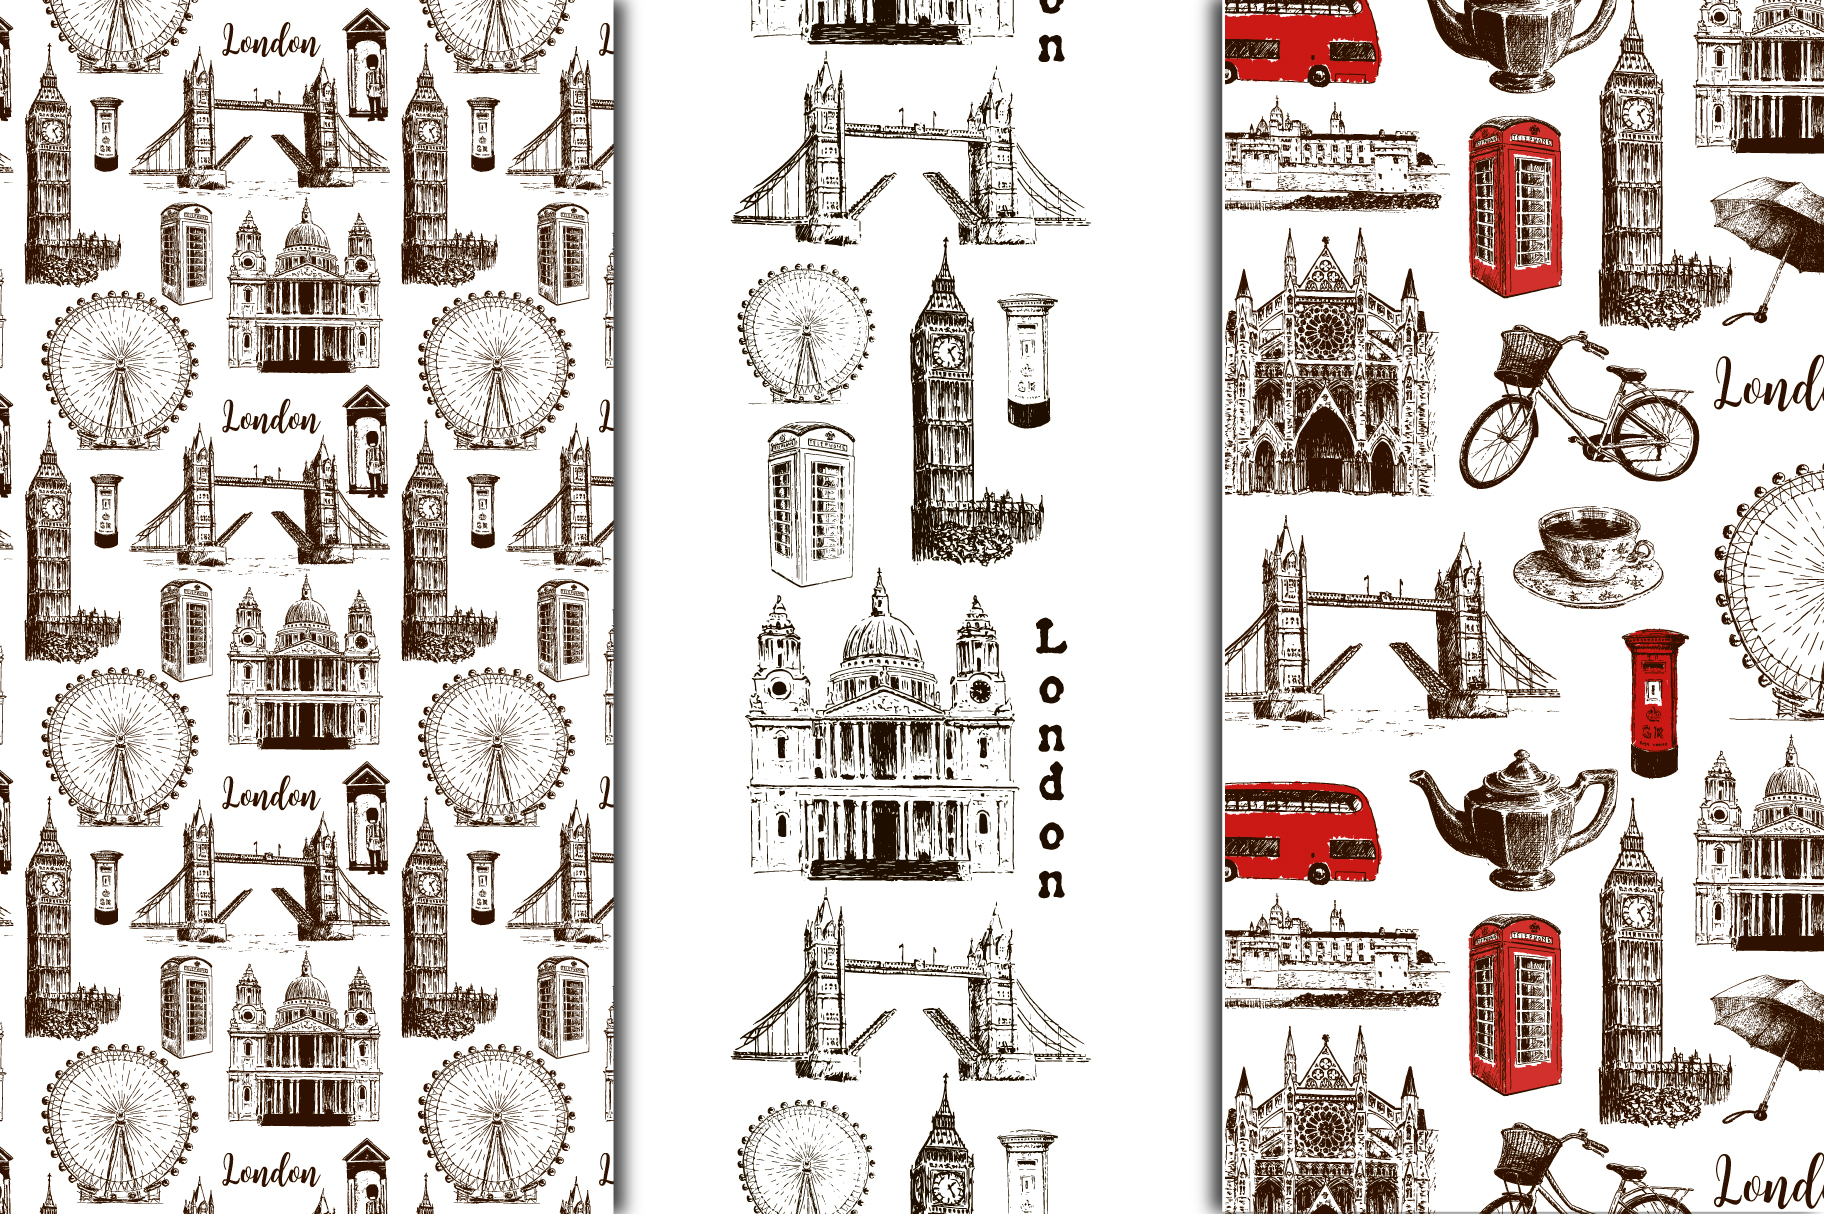 Set of London sketches example image 5